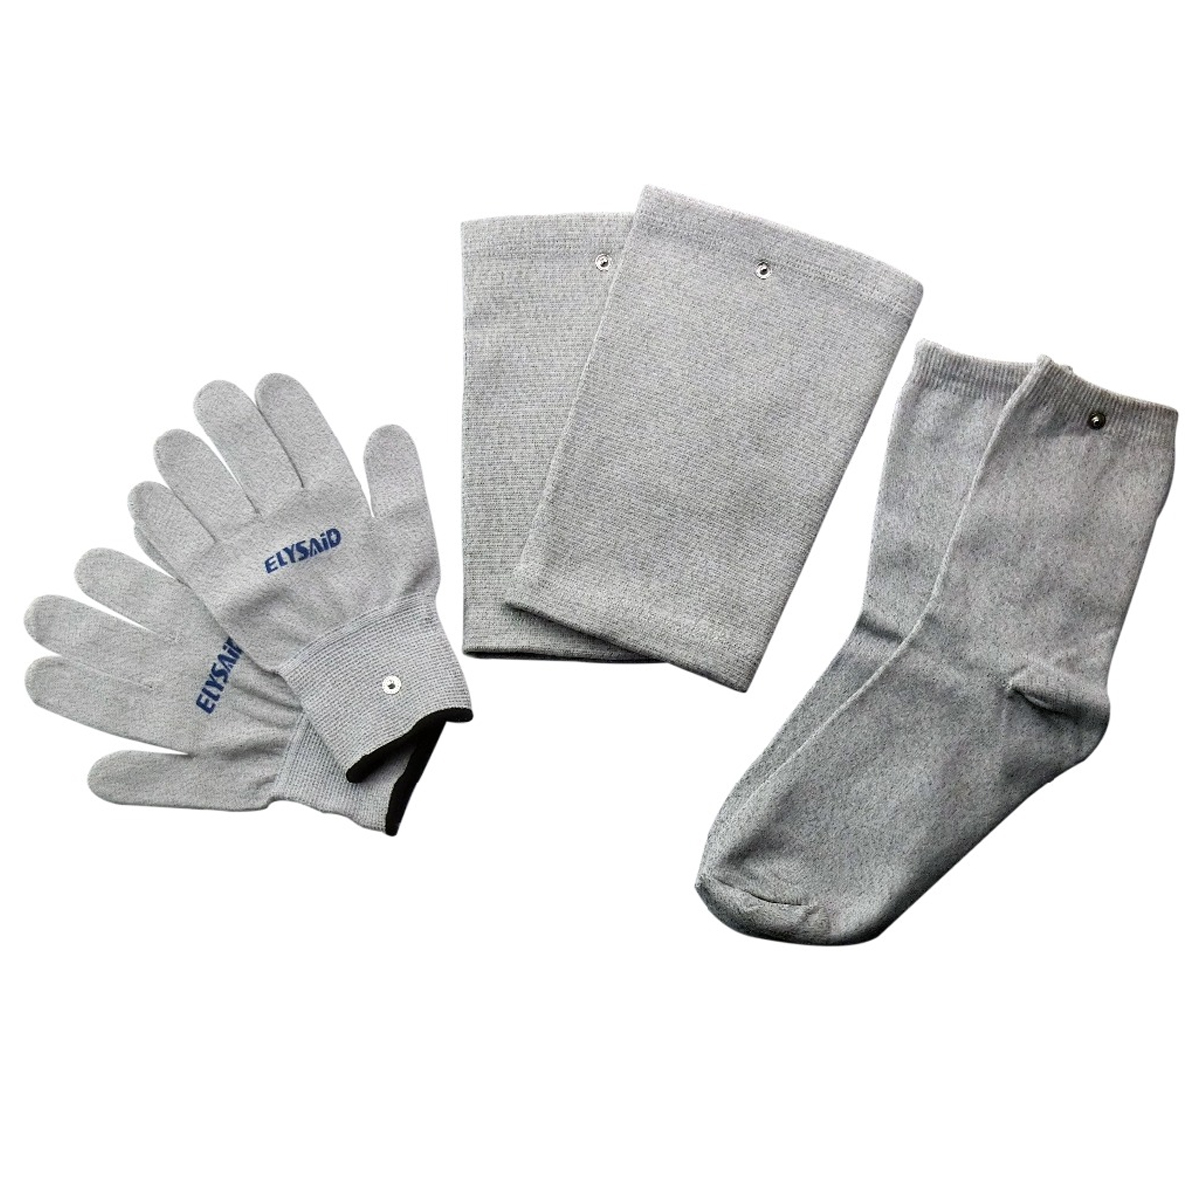 1 Set=3 Pairs Electrical Stimulator Conductive Fiber TENS/EMS Massage Gloves Socks Electrotherapy/Facial Conductive Knee Pads 800 wires soft silver occ alloy teflo aft earphone cable for westone es3x es5 um2 um3xrc um3x w4r ln005403